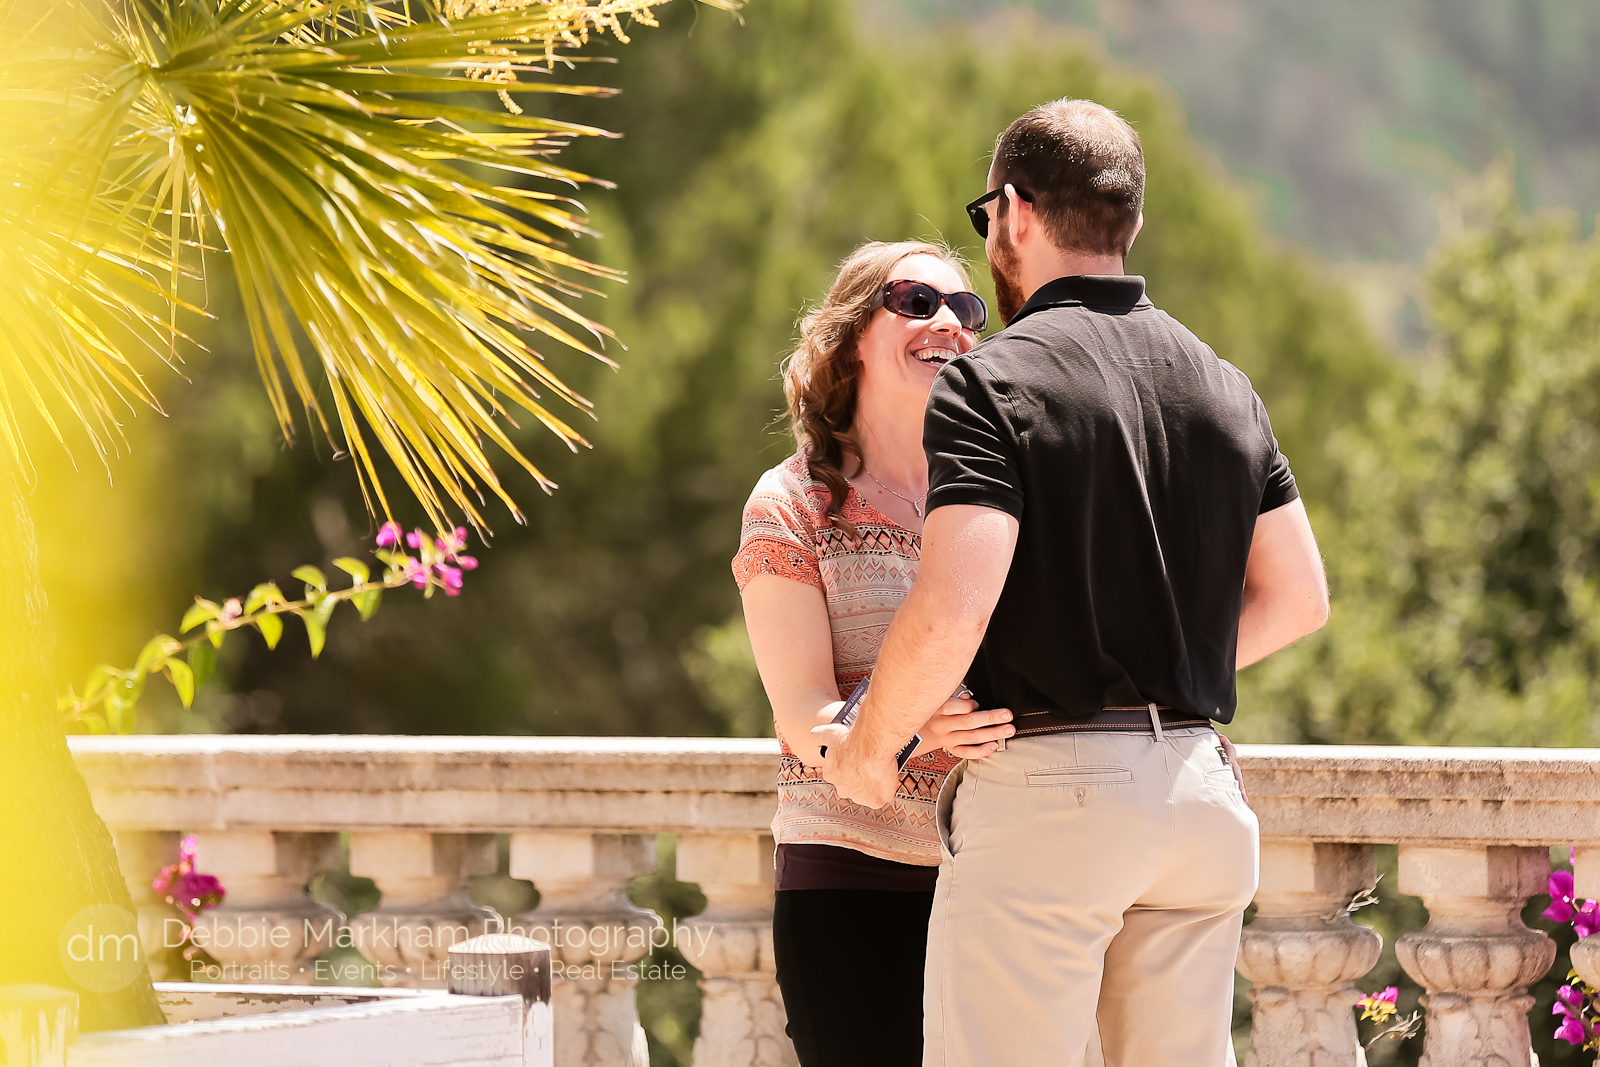 Surprise Proposal at Hearst Castle by Debbie Markham